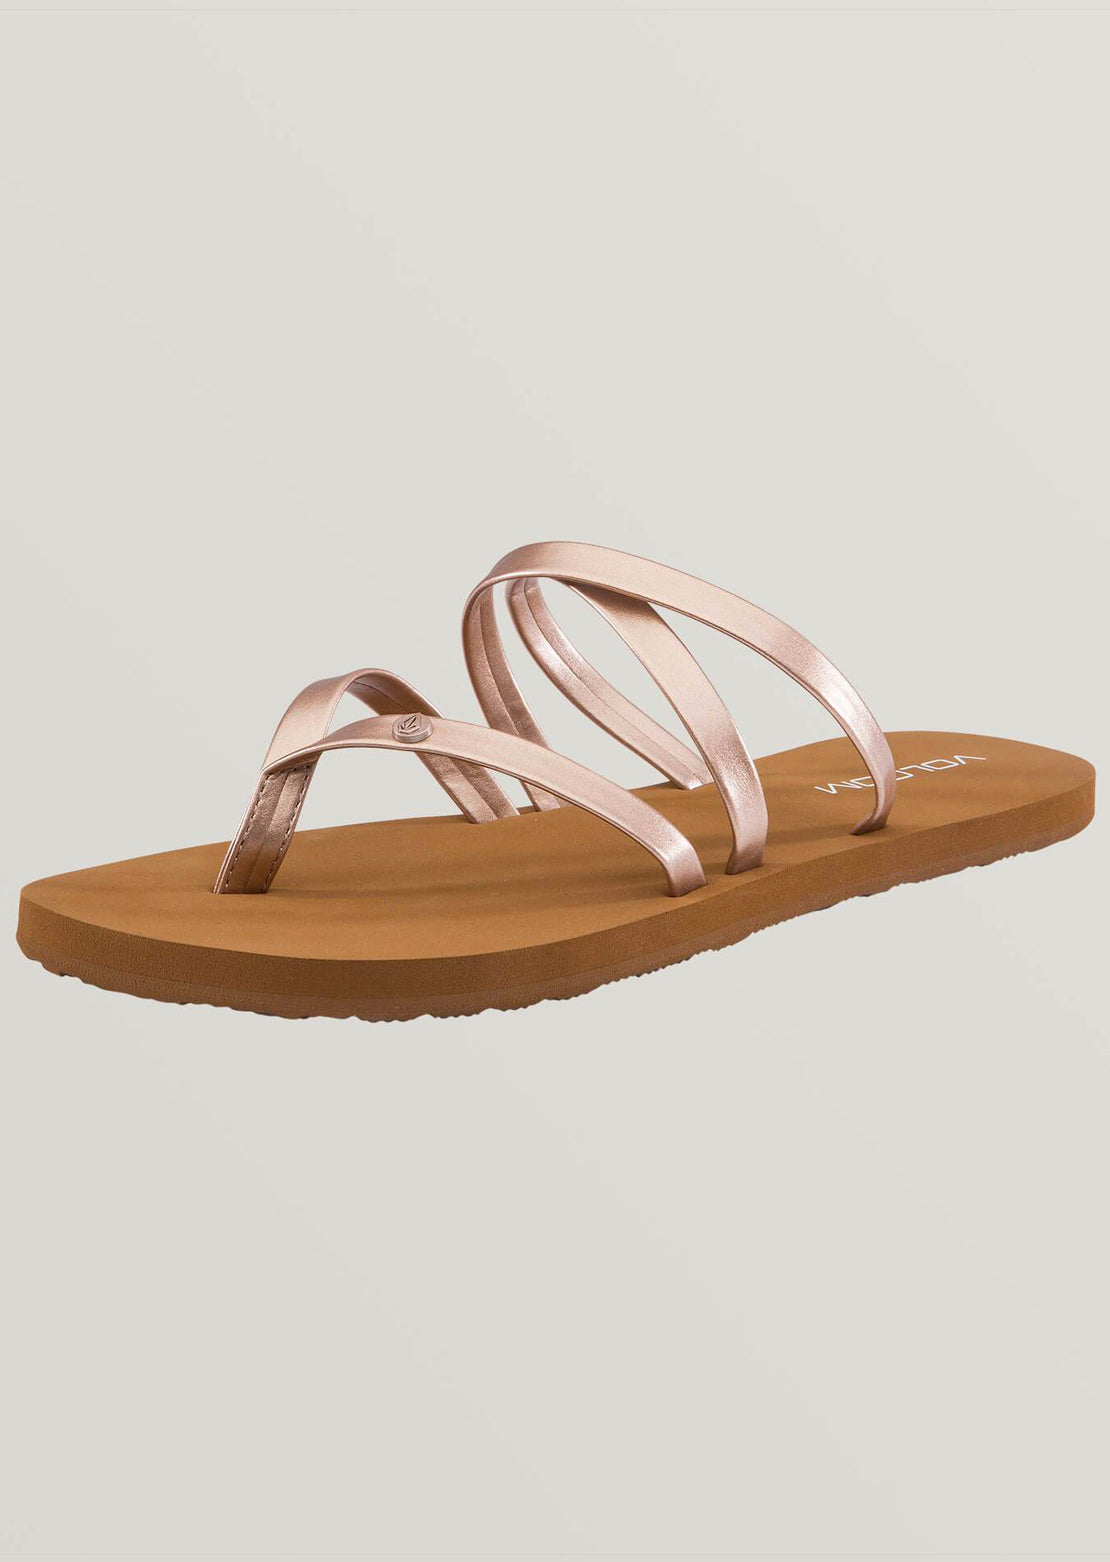 Volcom Women's Easy Breezy II Sandals Rose Gold